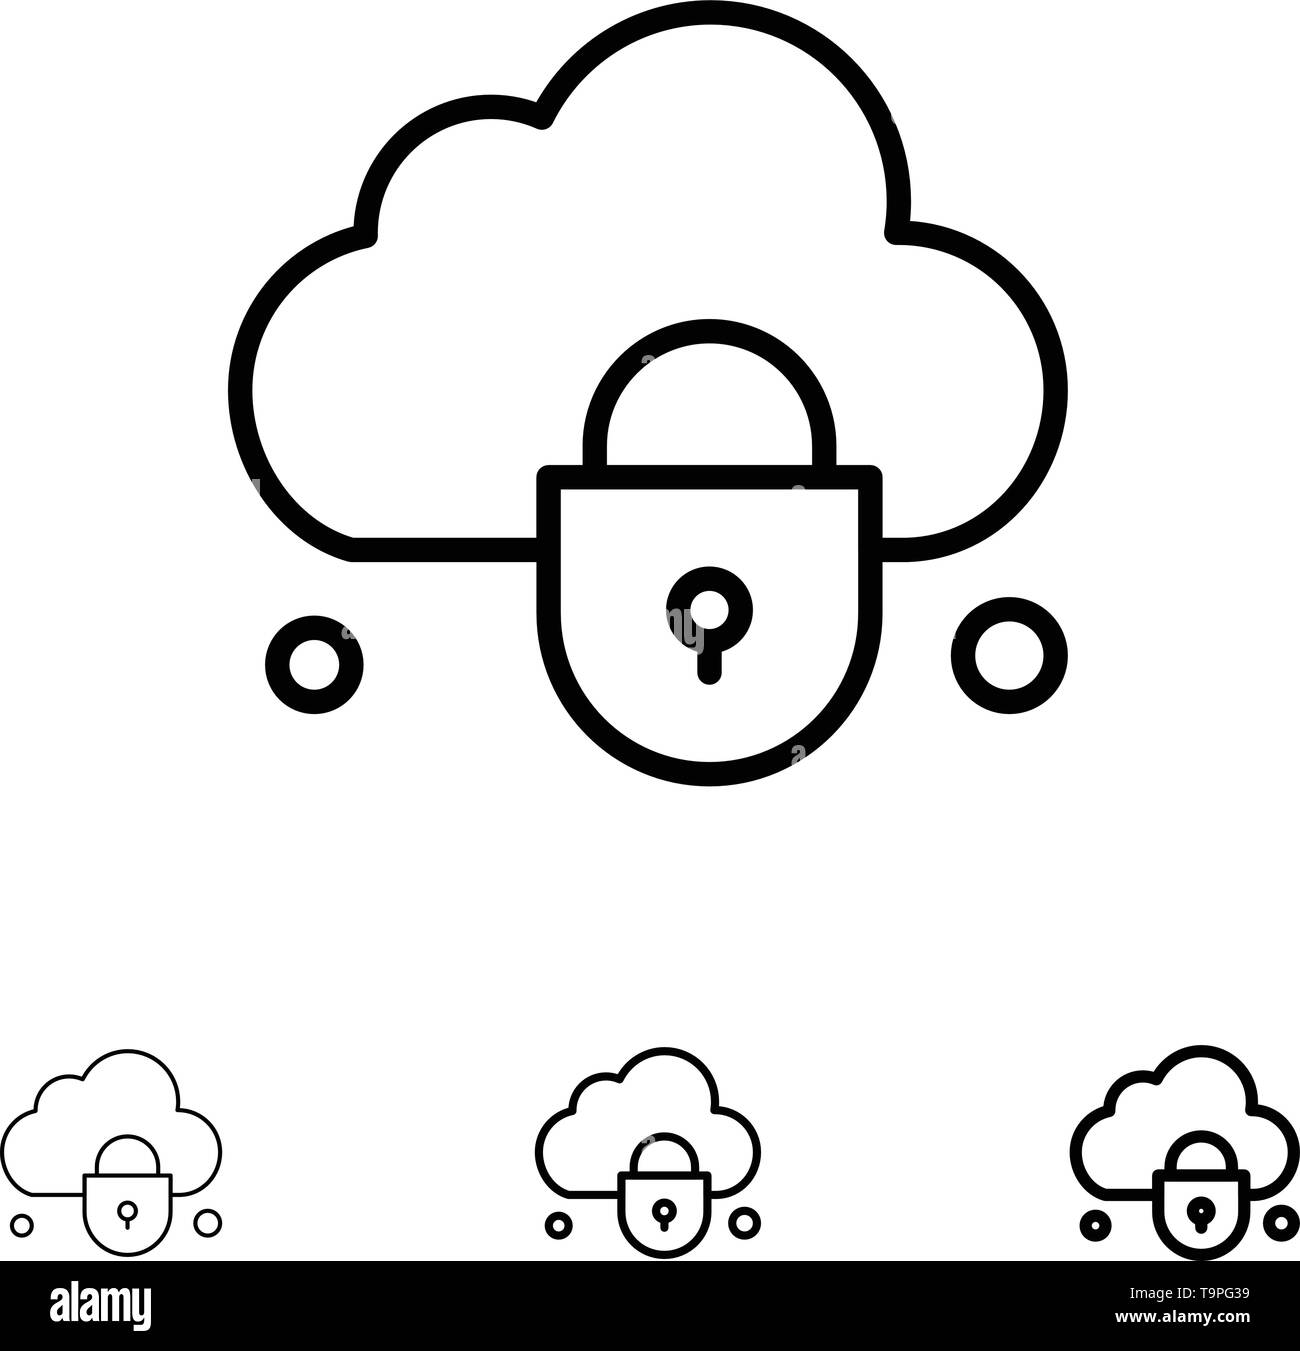 Internet, Cloud, Lock, Security Bold and thin black line icon set - Stock Image